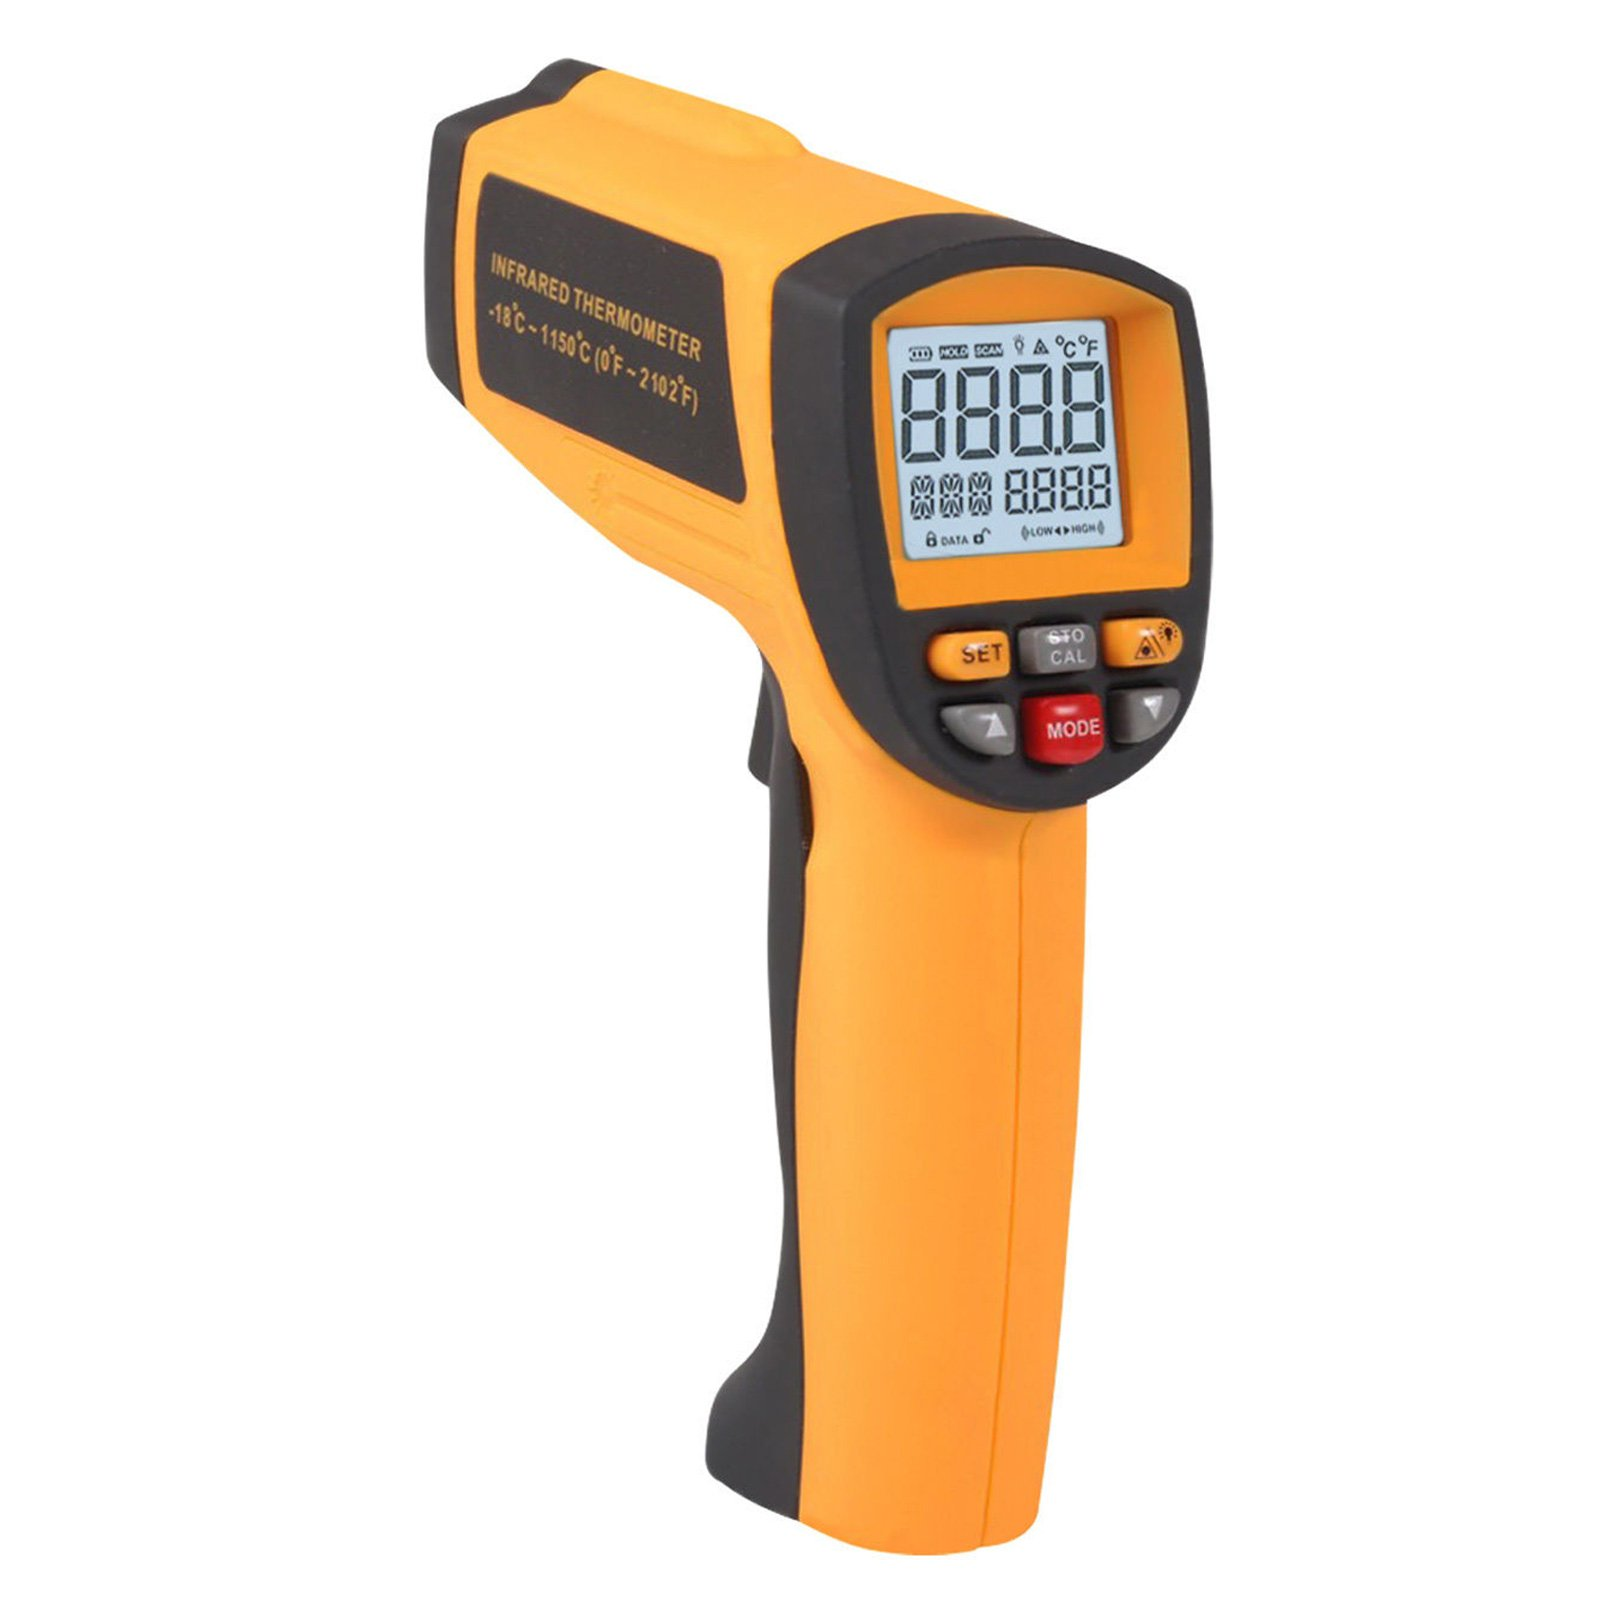 Digital Infrared IR Thermometer with 50 Is To 1 Distance Spot Ratio and -18 To 1150 Degree C or 0 To 2102 Degree F